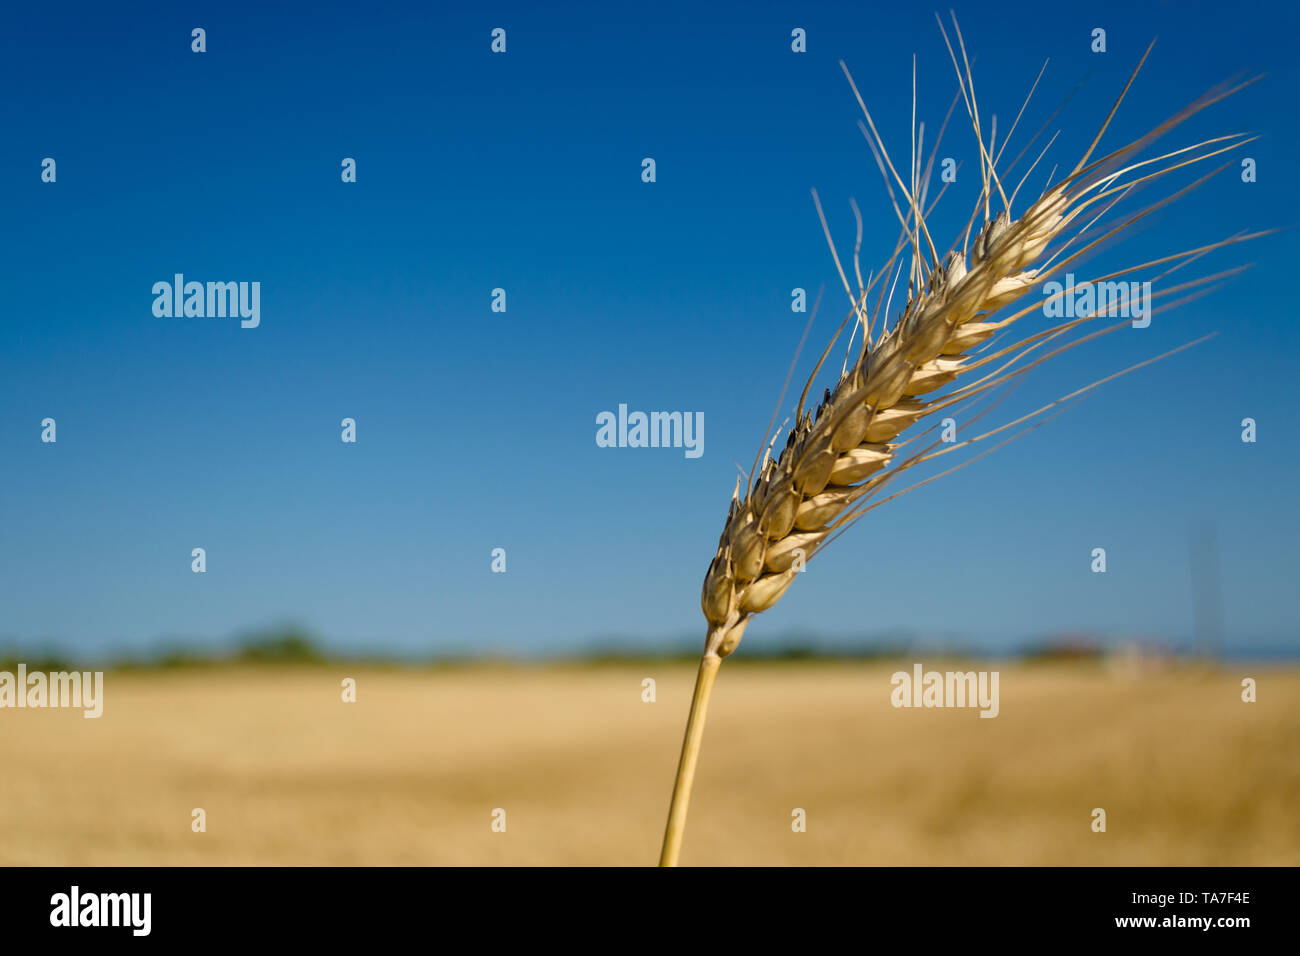 One spikelet of wheat on blue clear sky in a sunny summer hot day in a wide yellow field. Season of a harvesting. Close up of corn field ready for har - Stock Image